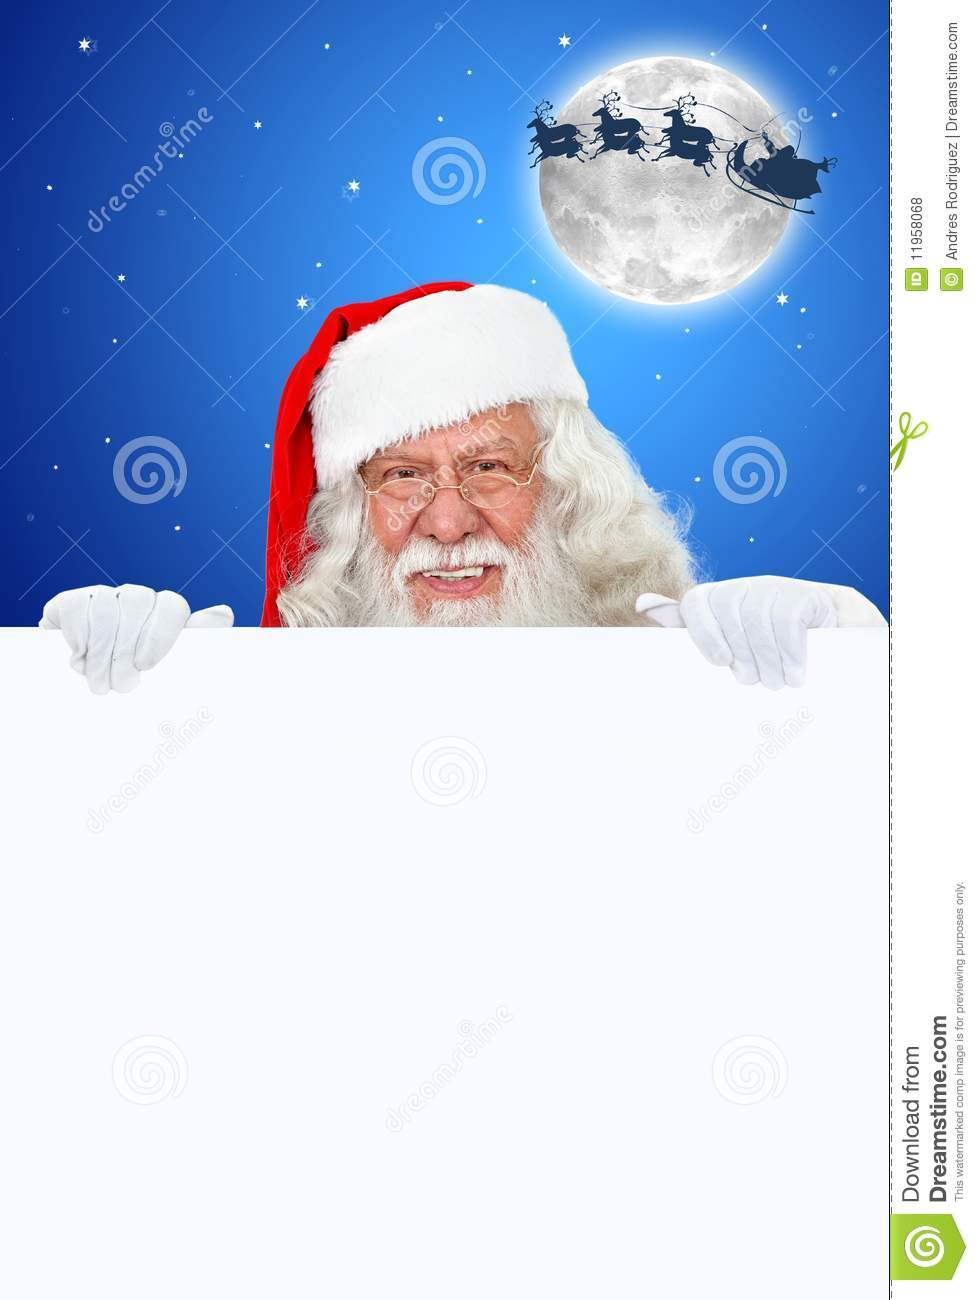 Santa claus with banner royalty free stock photos image